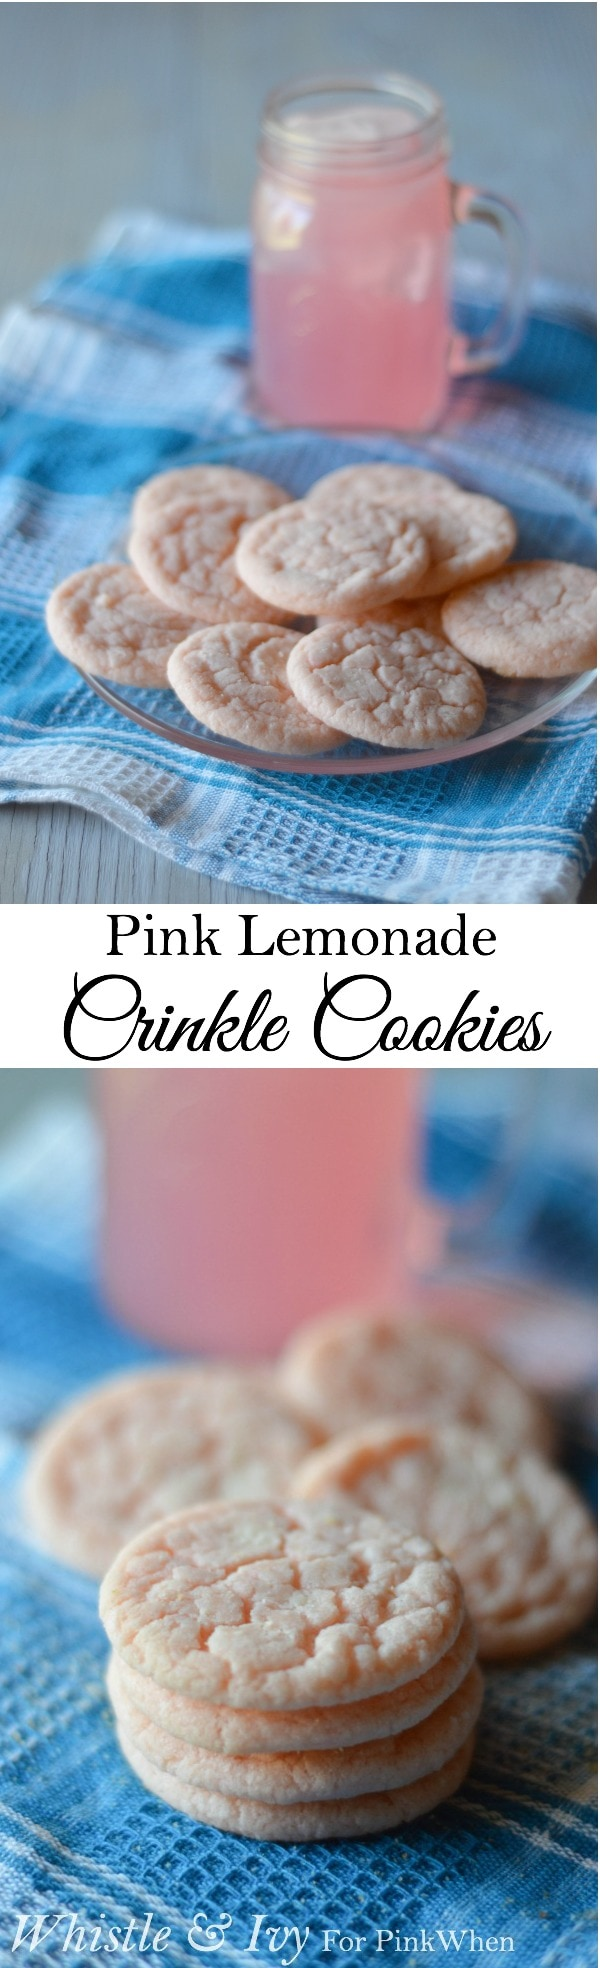 Pink Lemonade Crinkle Cookies